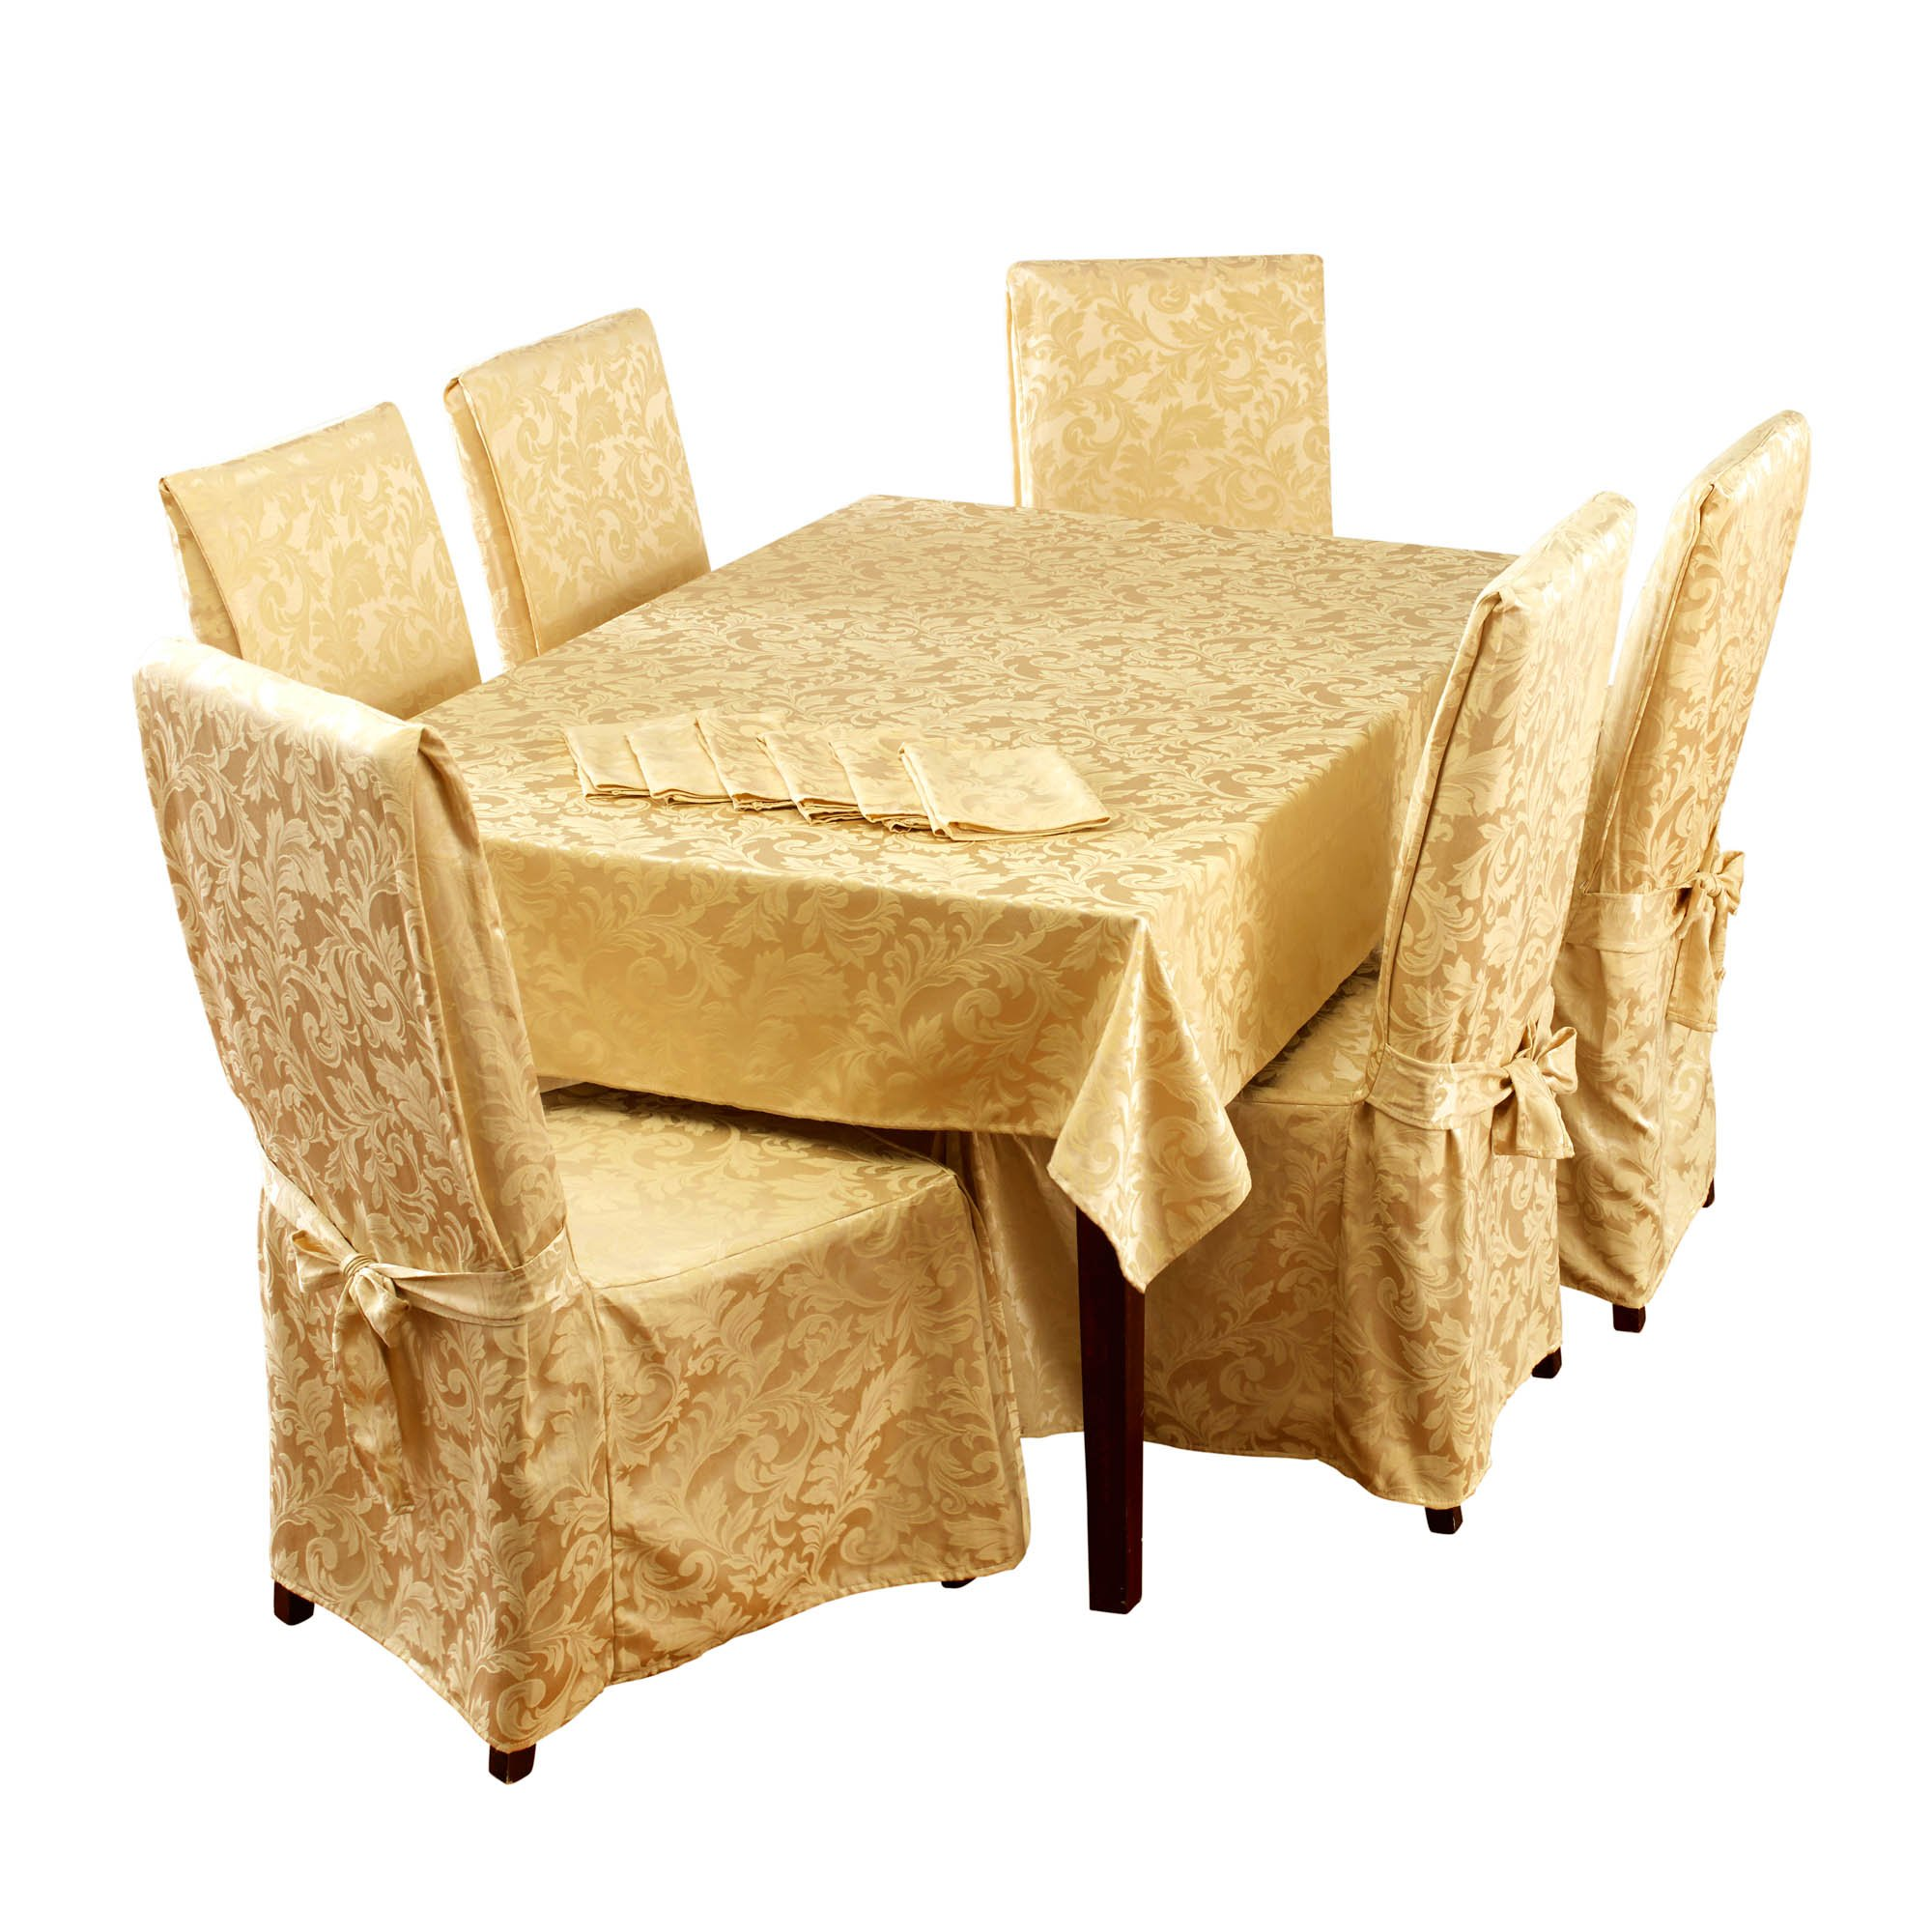 Stylemaster Home Products Genoa 13 Piece Dining Set, 60'' x 84'', Gold